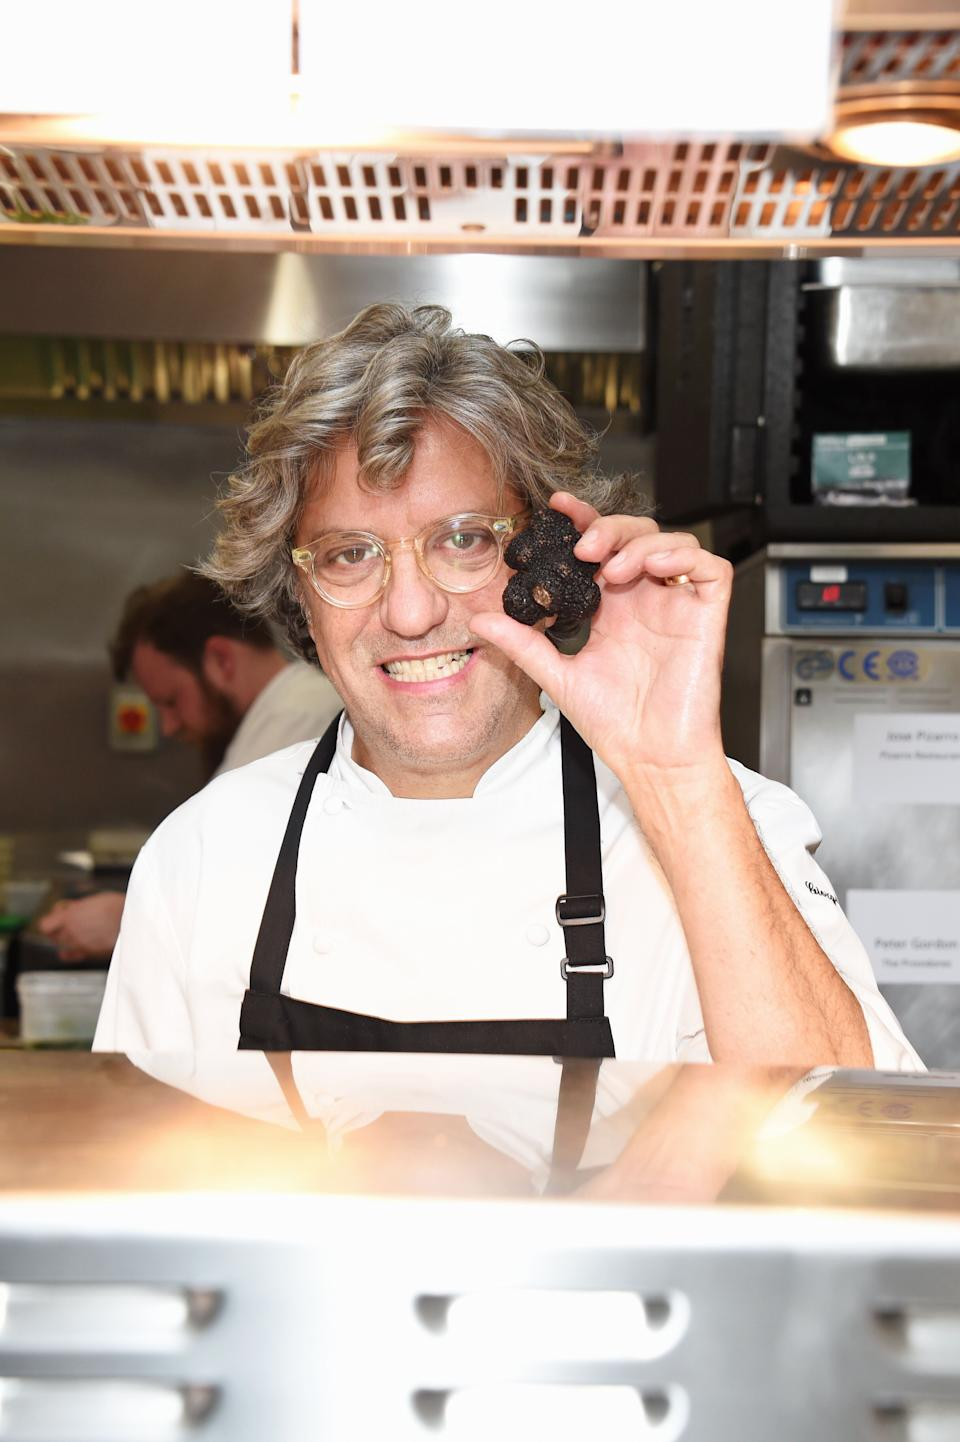 LONDON, ENGLAND - MARCH 05:  Giorgio Locatelli prepares food in the kitchen at Who's Cooking Dinner? 2018, a charity dinner featuring 20 of the capital's finest chefs cooking for 200 diners in aid of leukaemia charity Leuka, at the Rosewood London on March 5, 2018 in London, England.  (Photo by David M. Benett/Dave Benett/Getty Images) (Photo: David M. Benett via Getty Images)